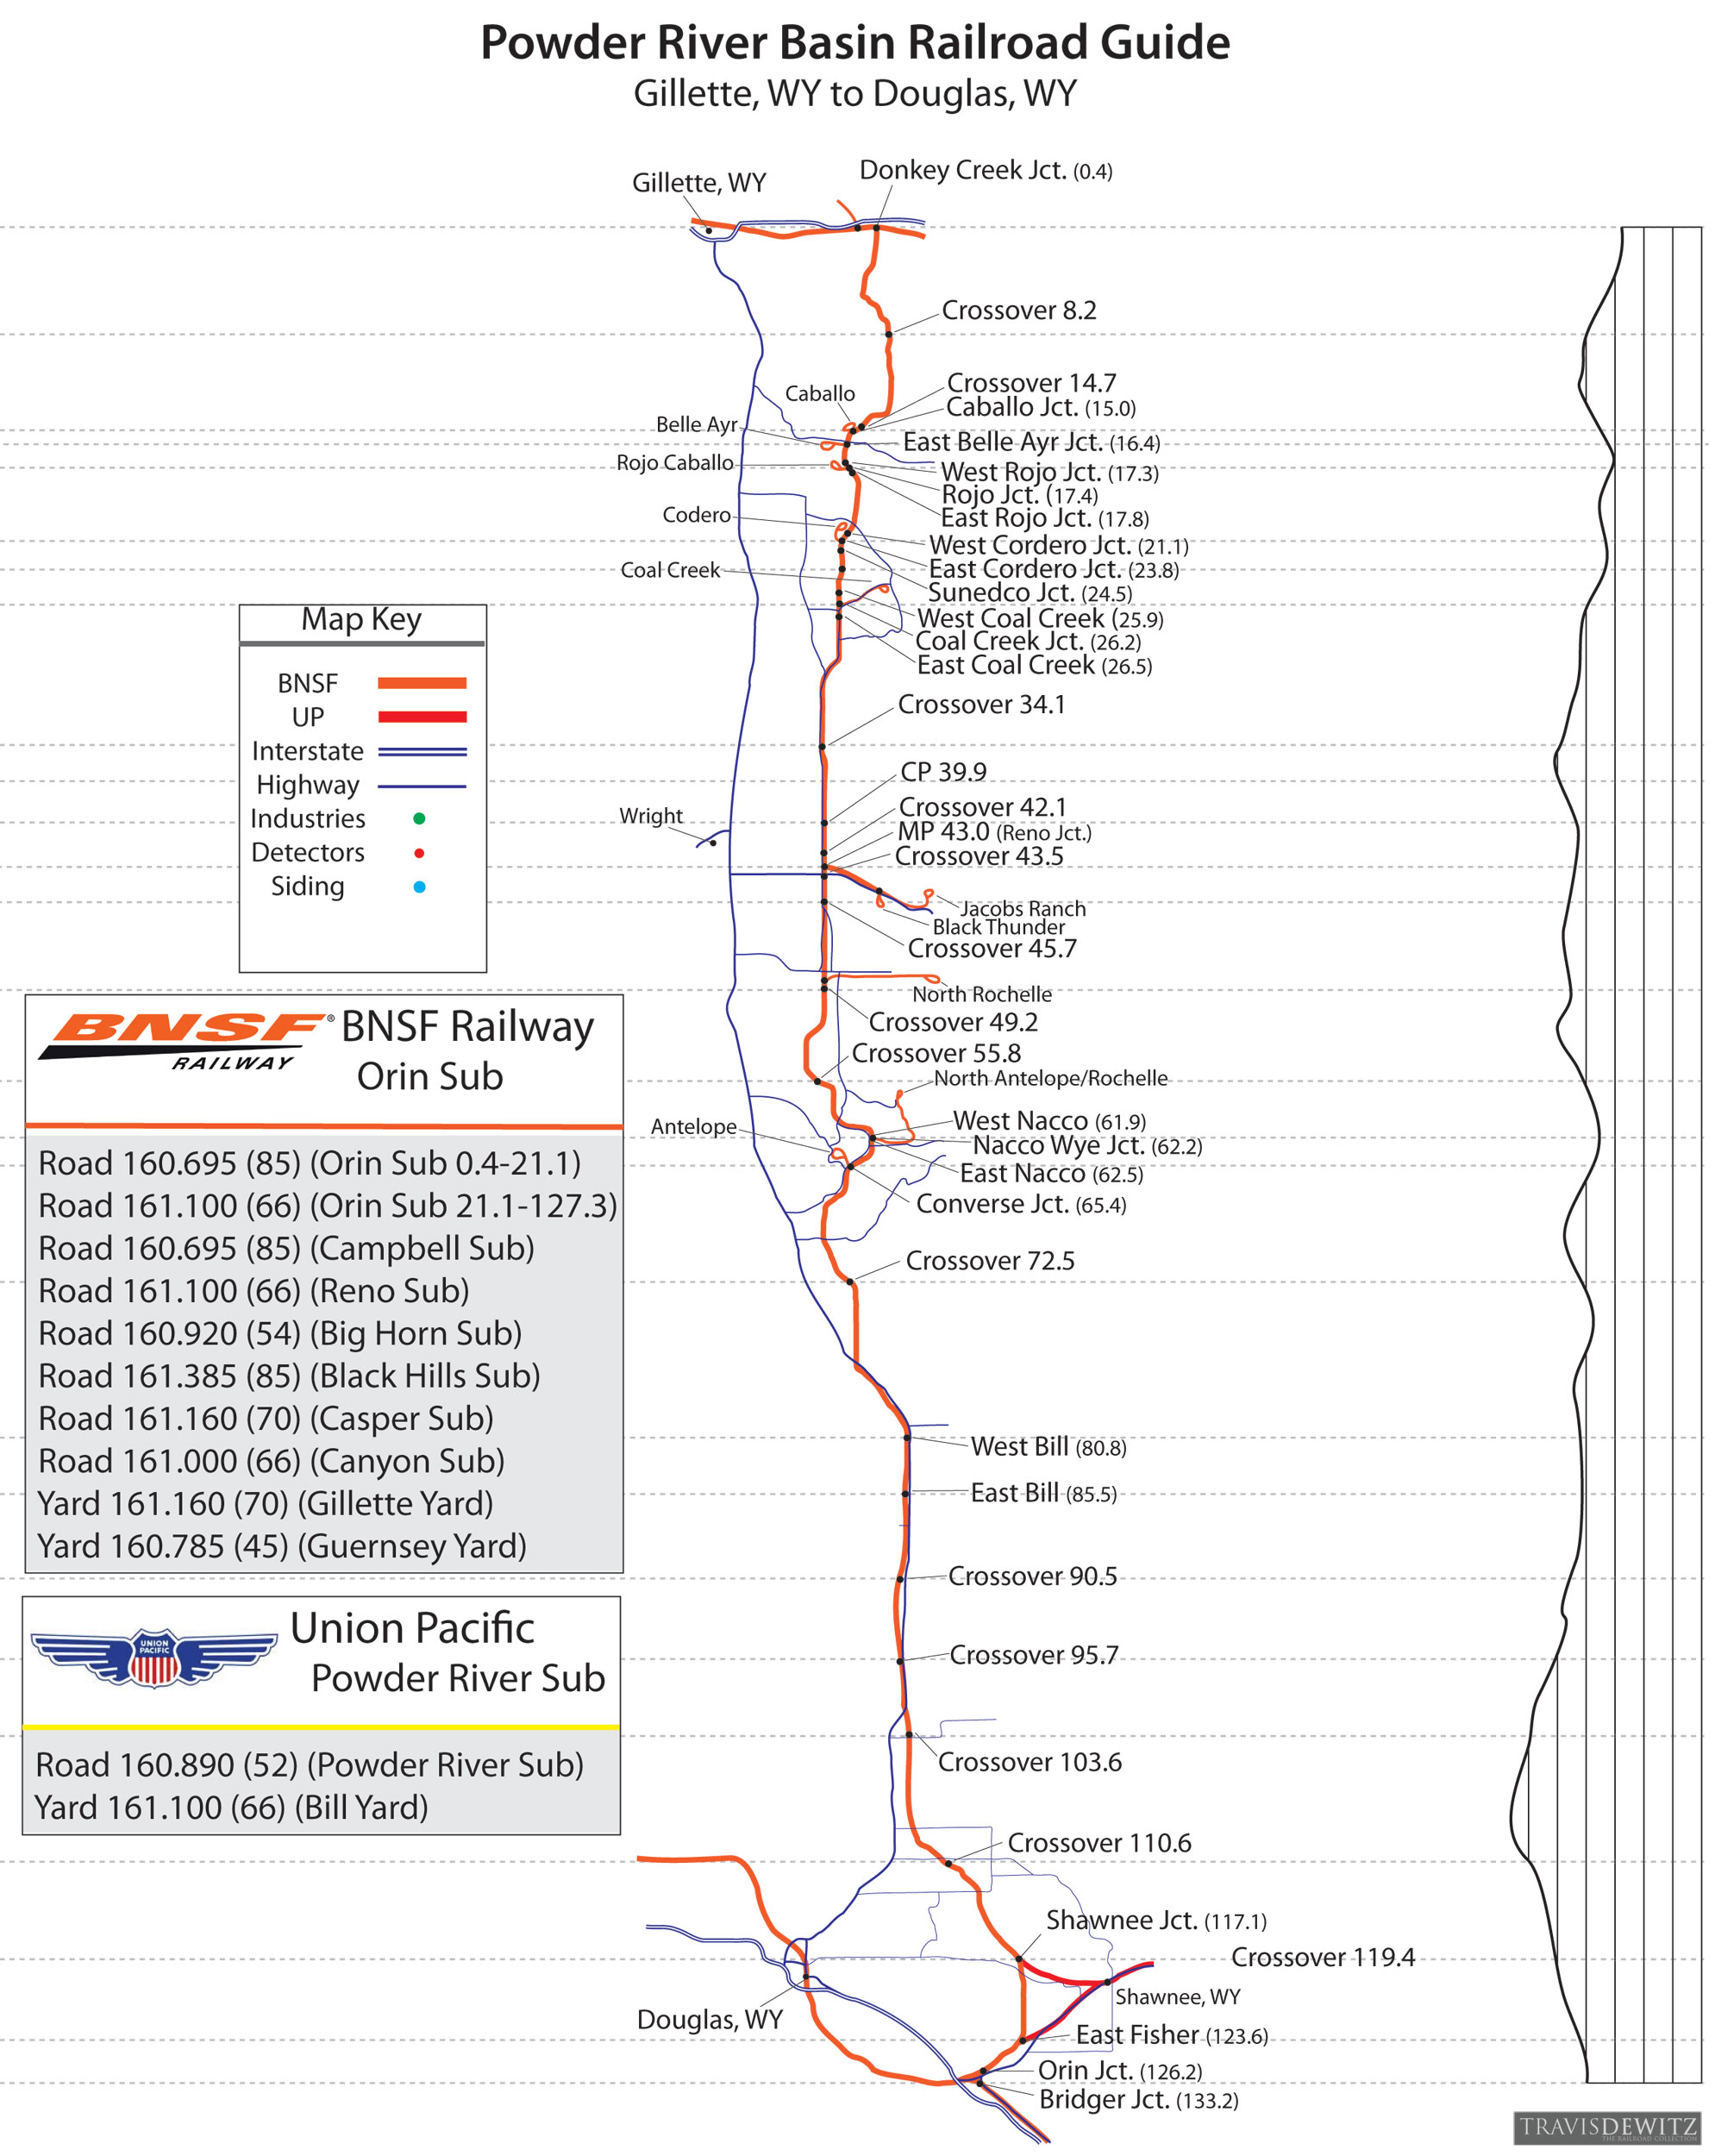 Railroad Map And Guide To Railfanning The Powder River Basin - Bnsf railway us map